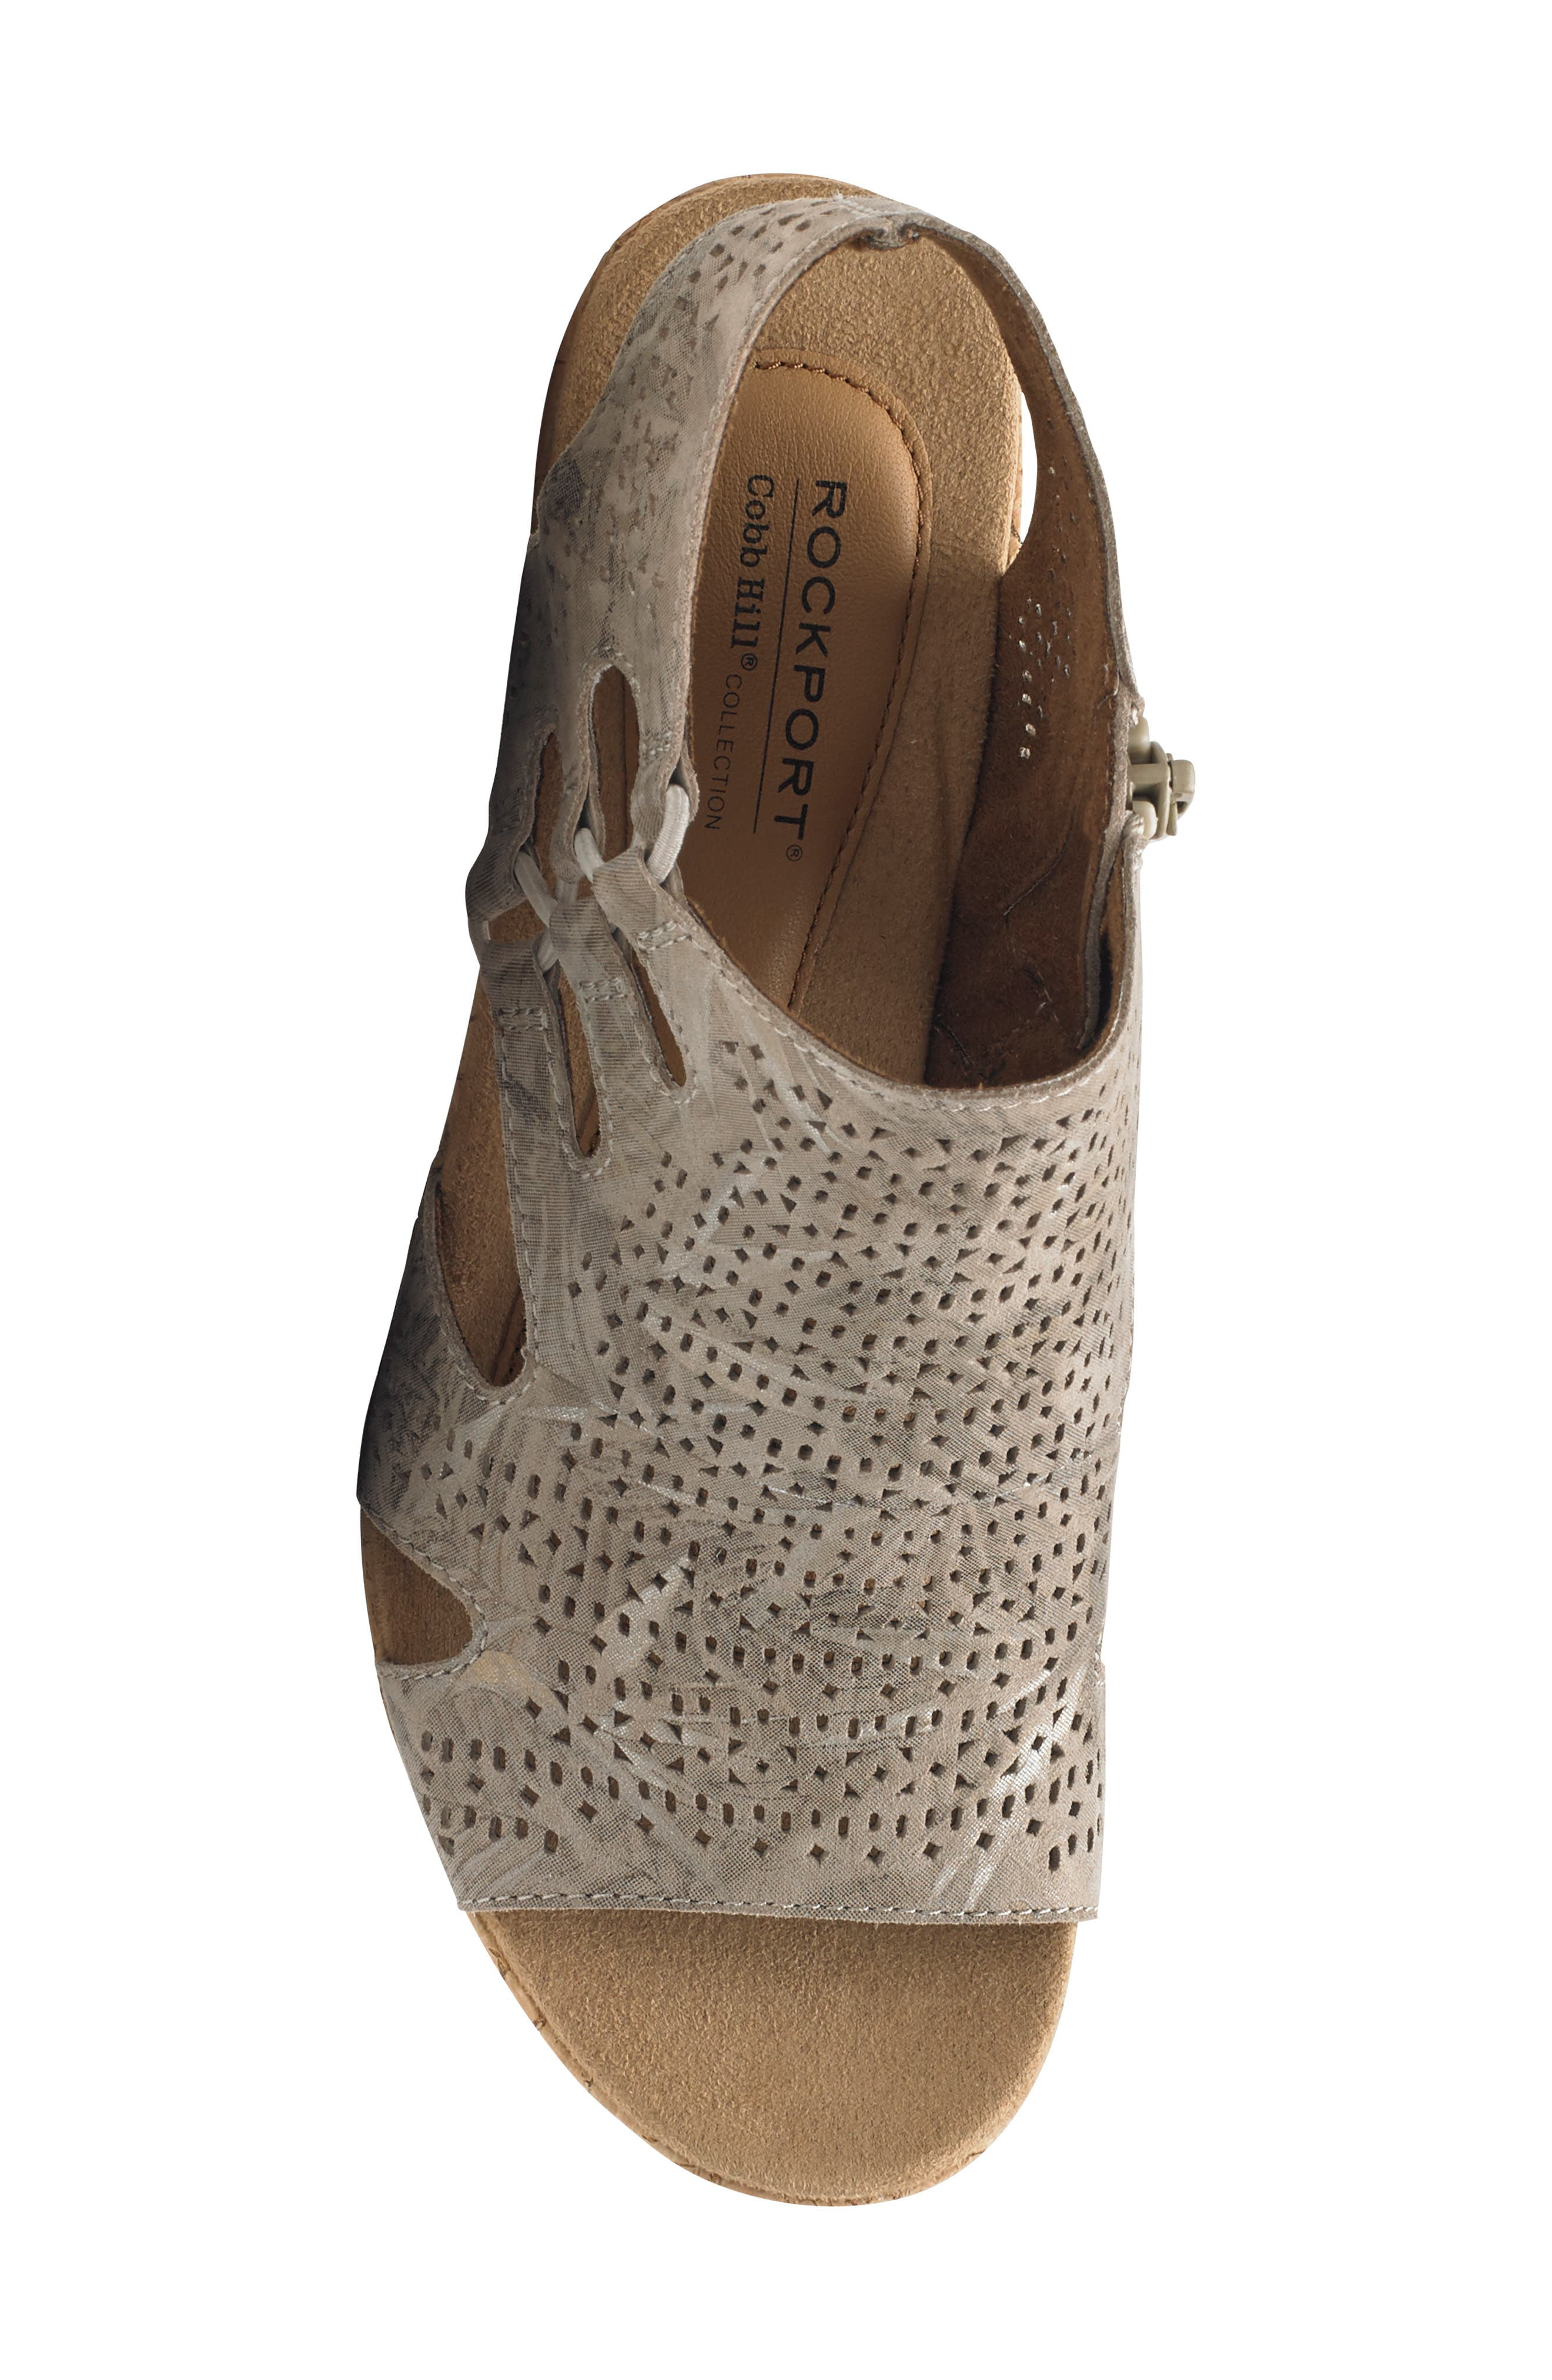 ROCKPORT COBB HILL, Janna Perforated Wedge Sandal, Alternate thumbnail 5, color, FLORAL METALLIC LEATHER